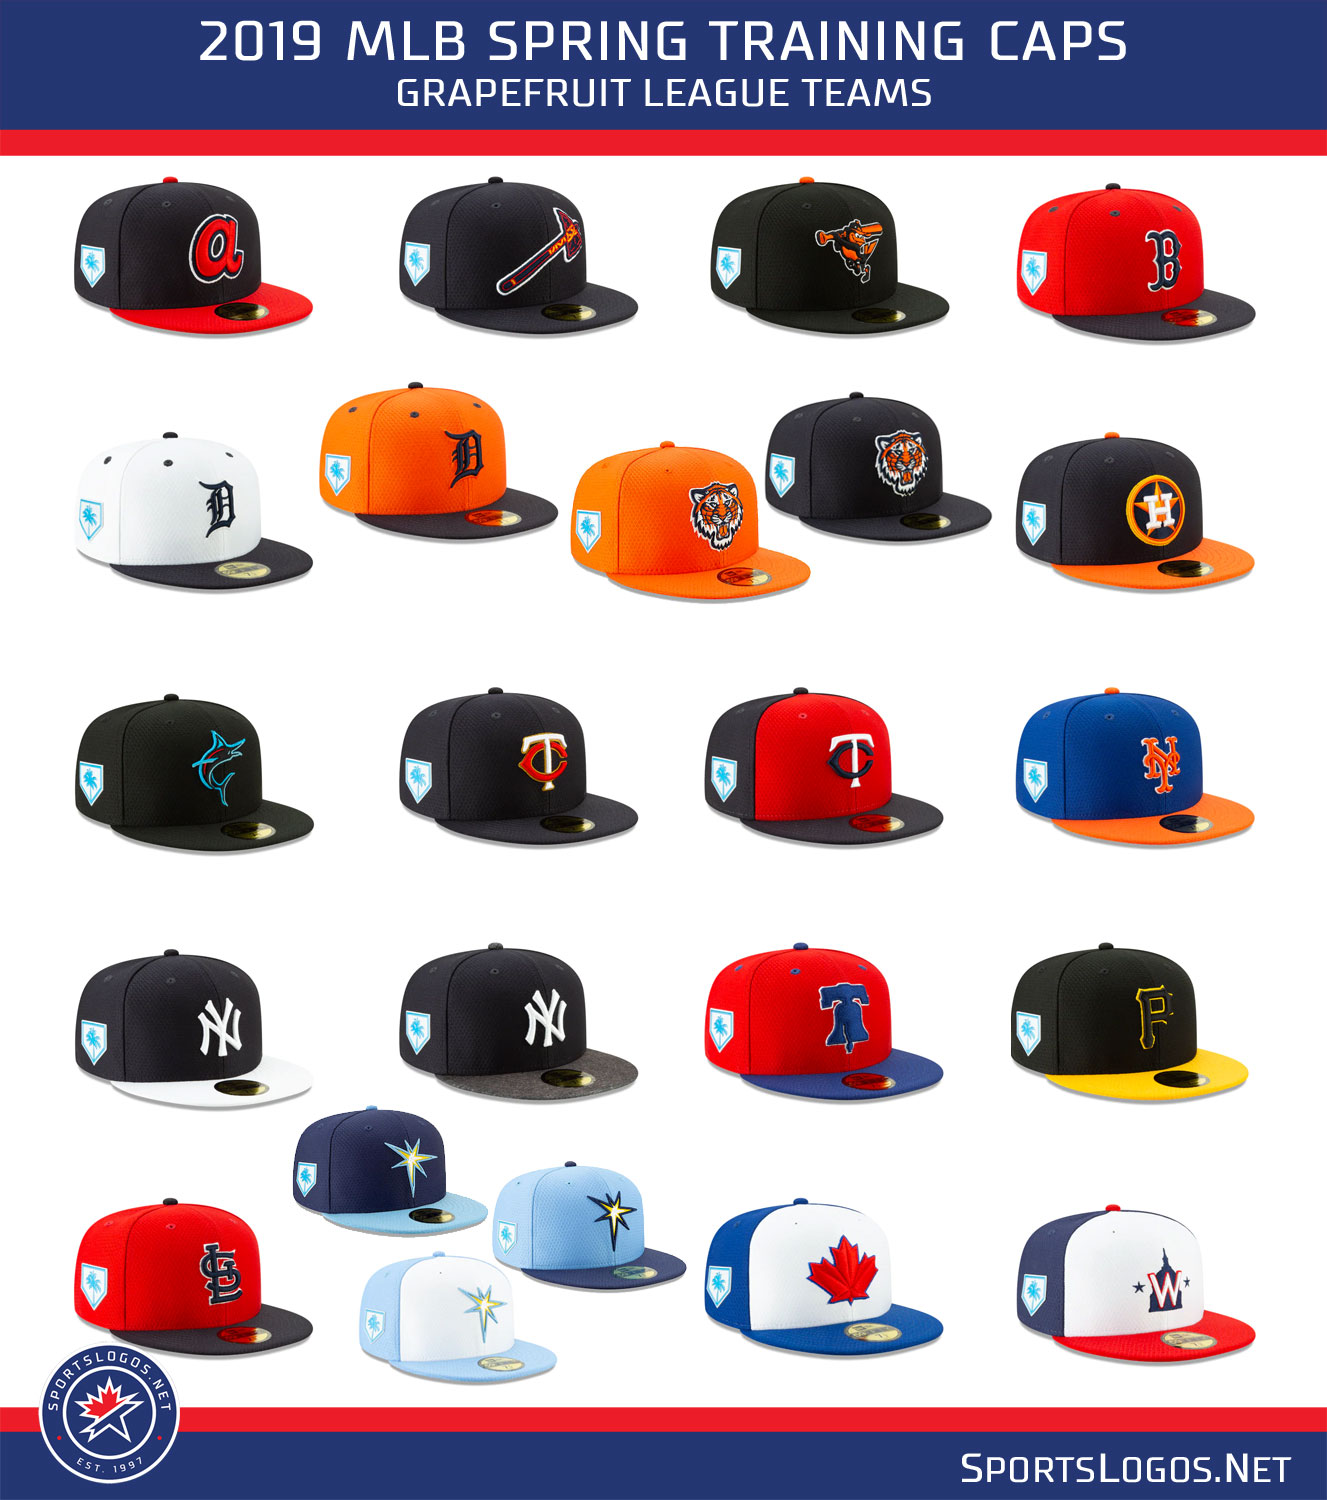 9a3cdfdc7f1 Here are the entire 2019 MLB Spring Training on-field cap collections